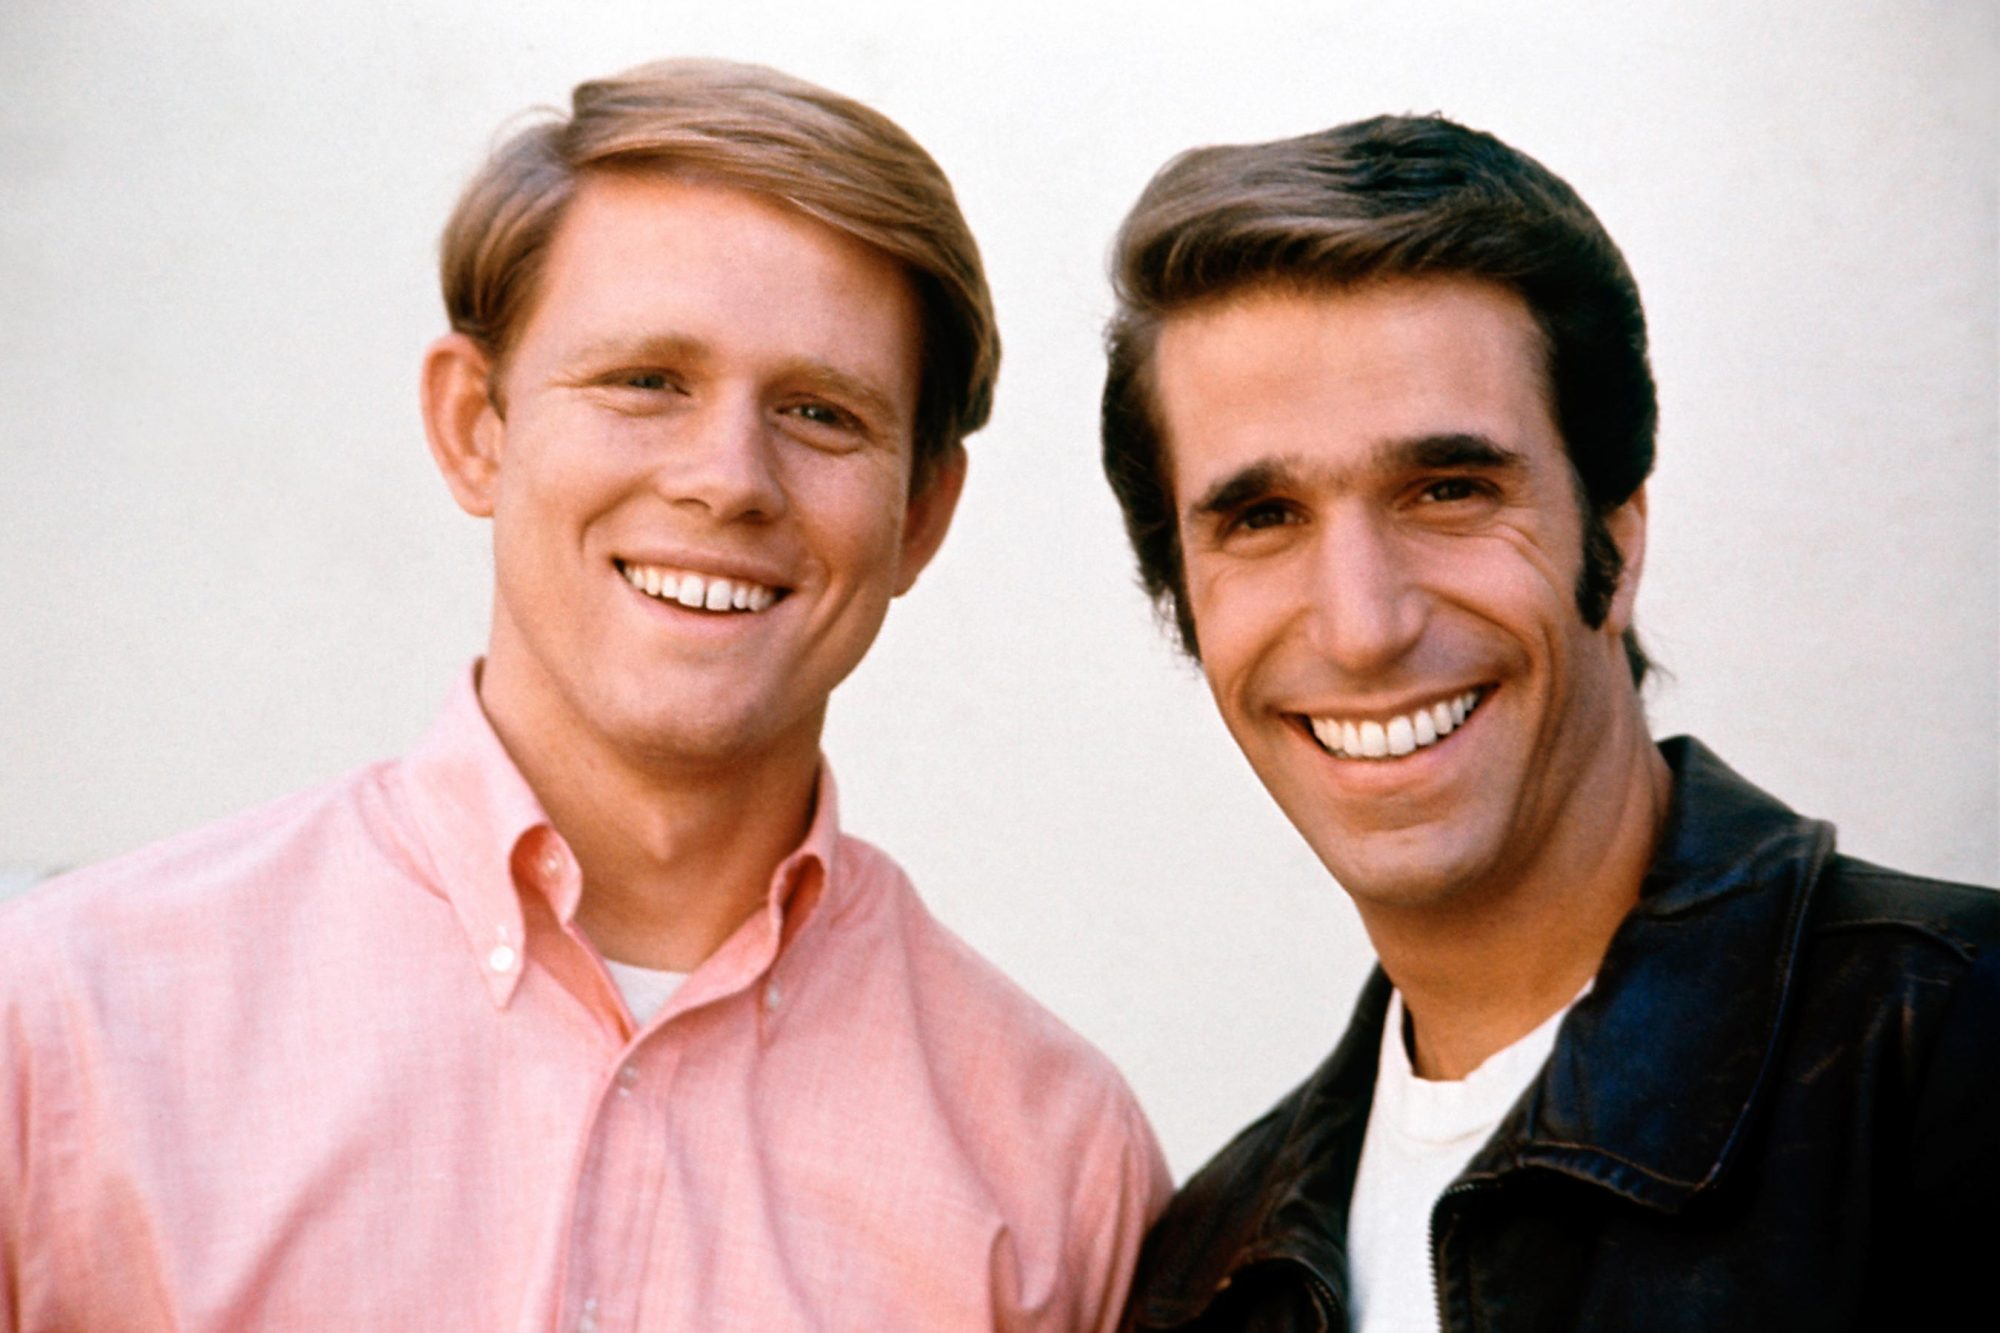 HAPPY DAYS, Henry Winkler, Ron Howard, television, 1974-1984.